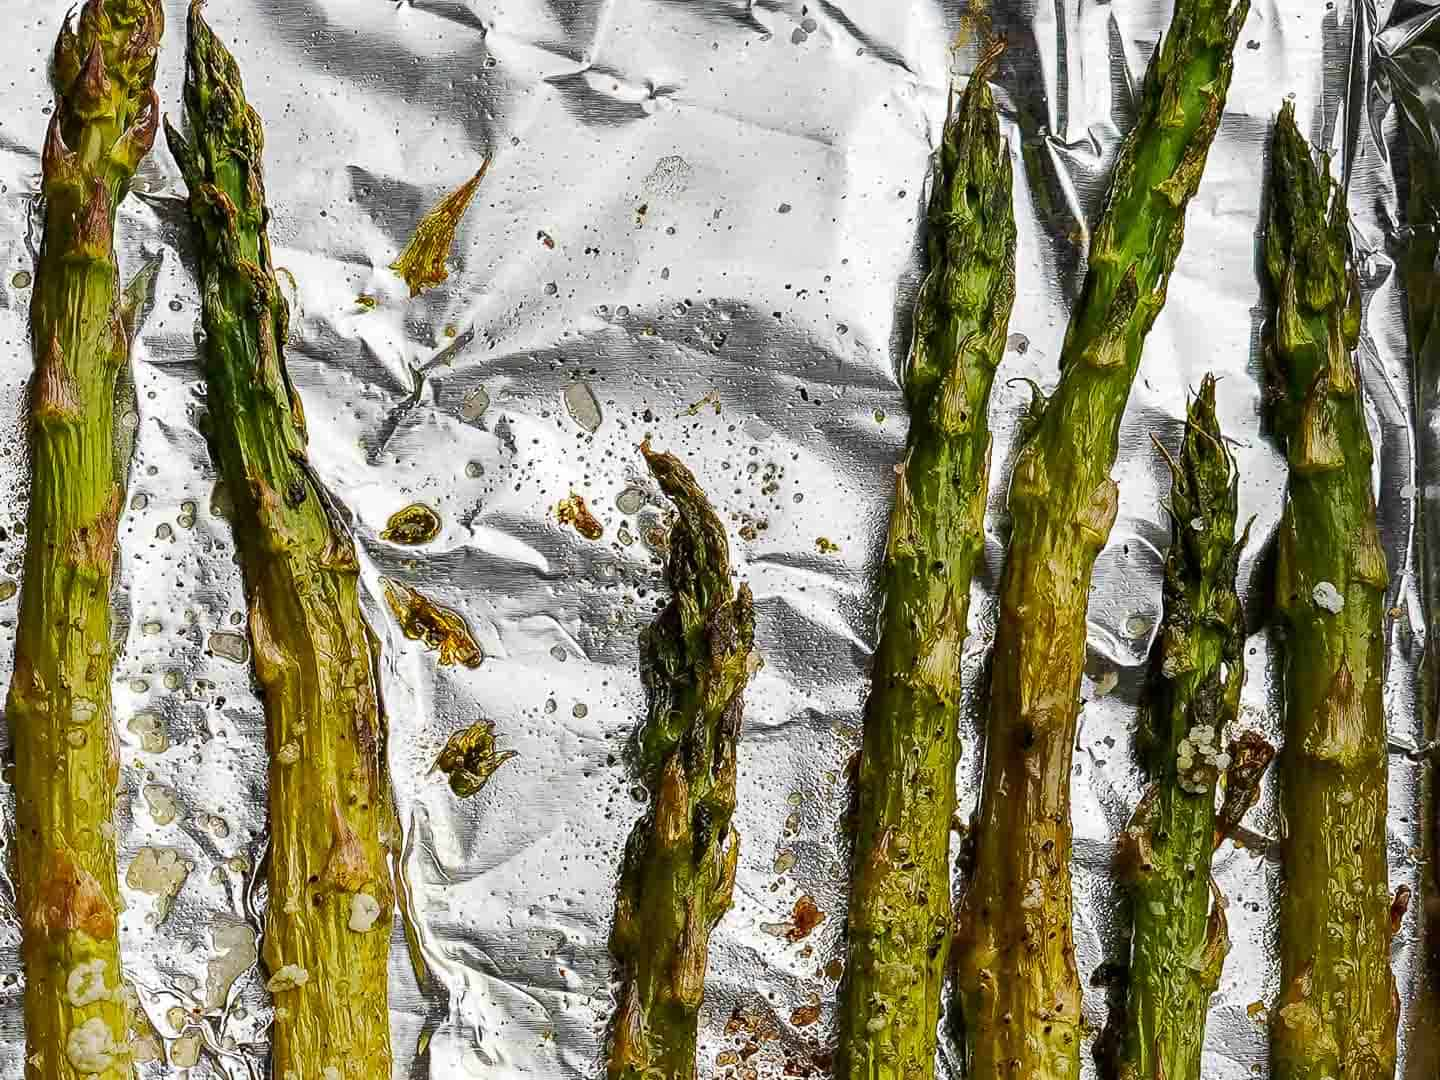 Close up view of roasted asparagus on aluminum foil